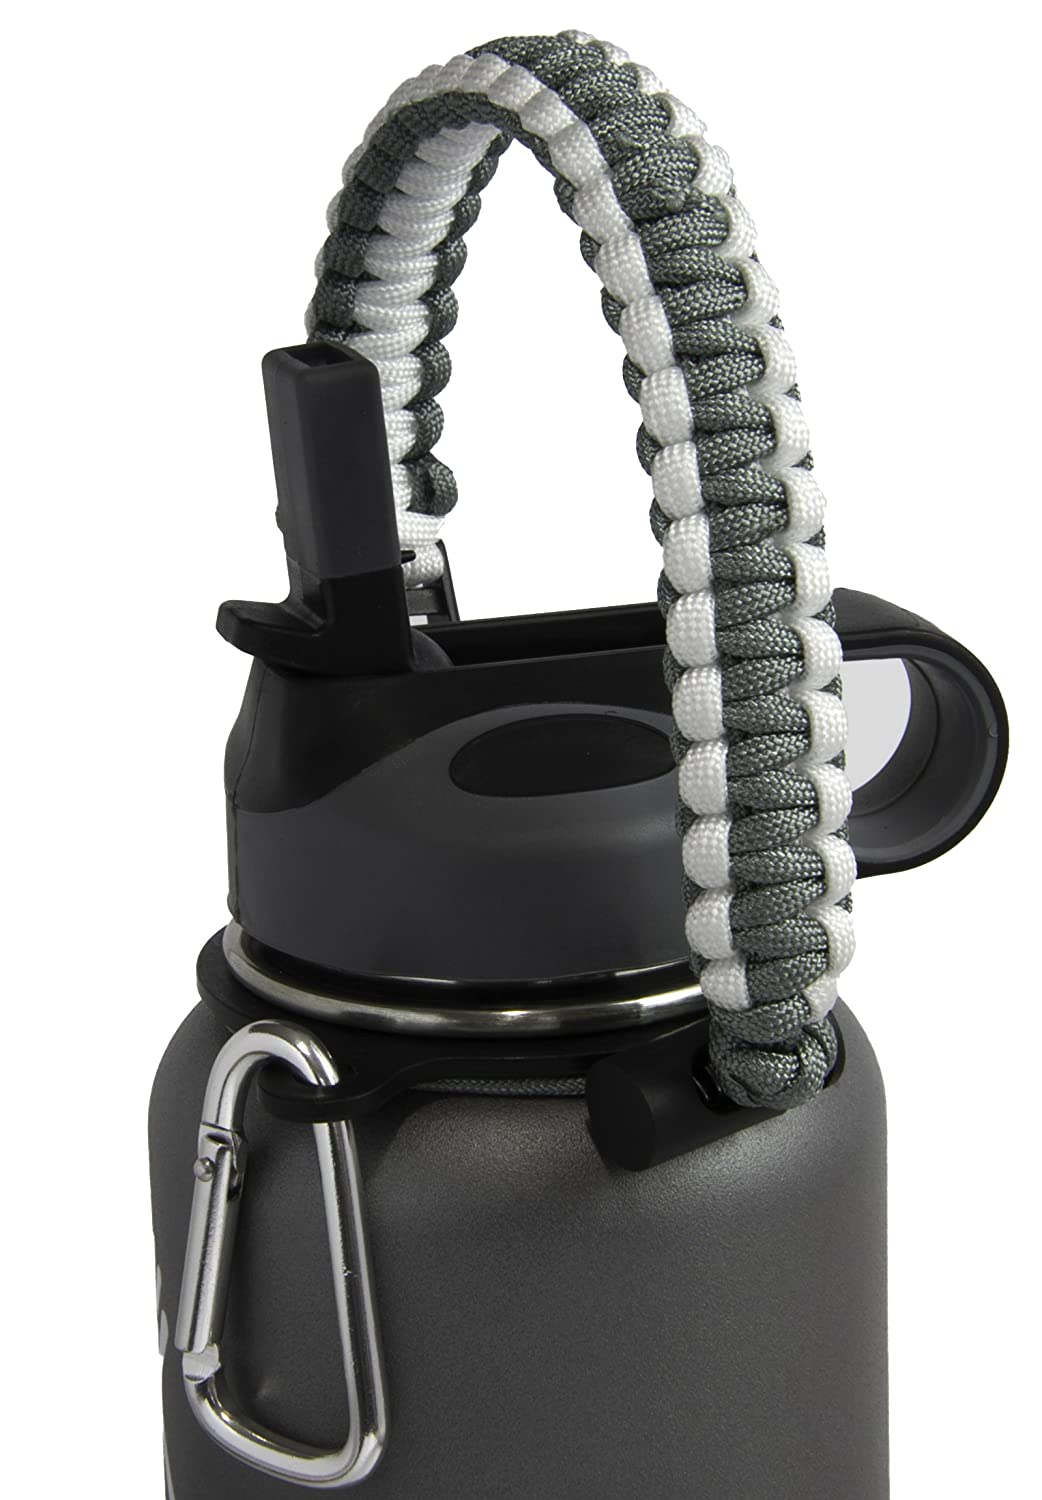 Durable 550 and Carabiner Carabiner WS Goods Straw Everything you need in one package! Security Ring Fits 12oz Premium Quality Paracord Handle Carrier Kit 32oz Wide Mouth Bottles Wide Mouth Straw Lid 350 Paracord Handle Grey//White